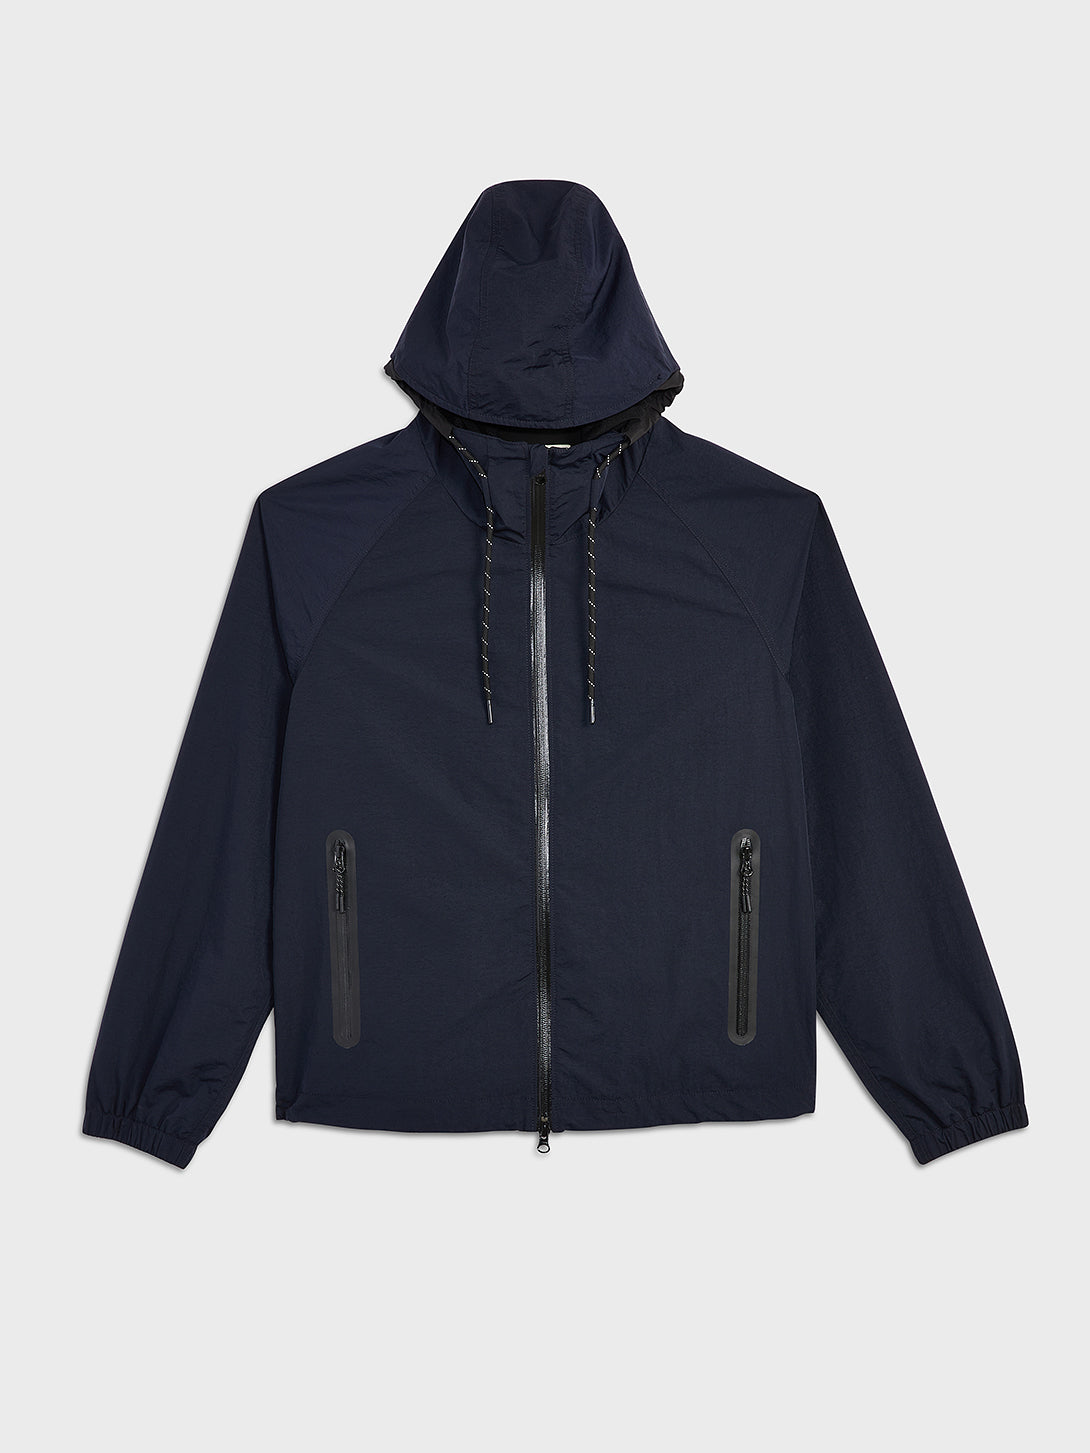 black friday deals ONS Clothing Men's ENVOY JACKET in NAVY